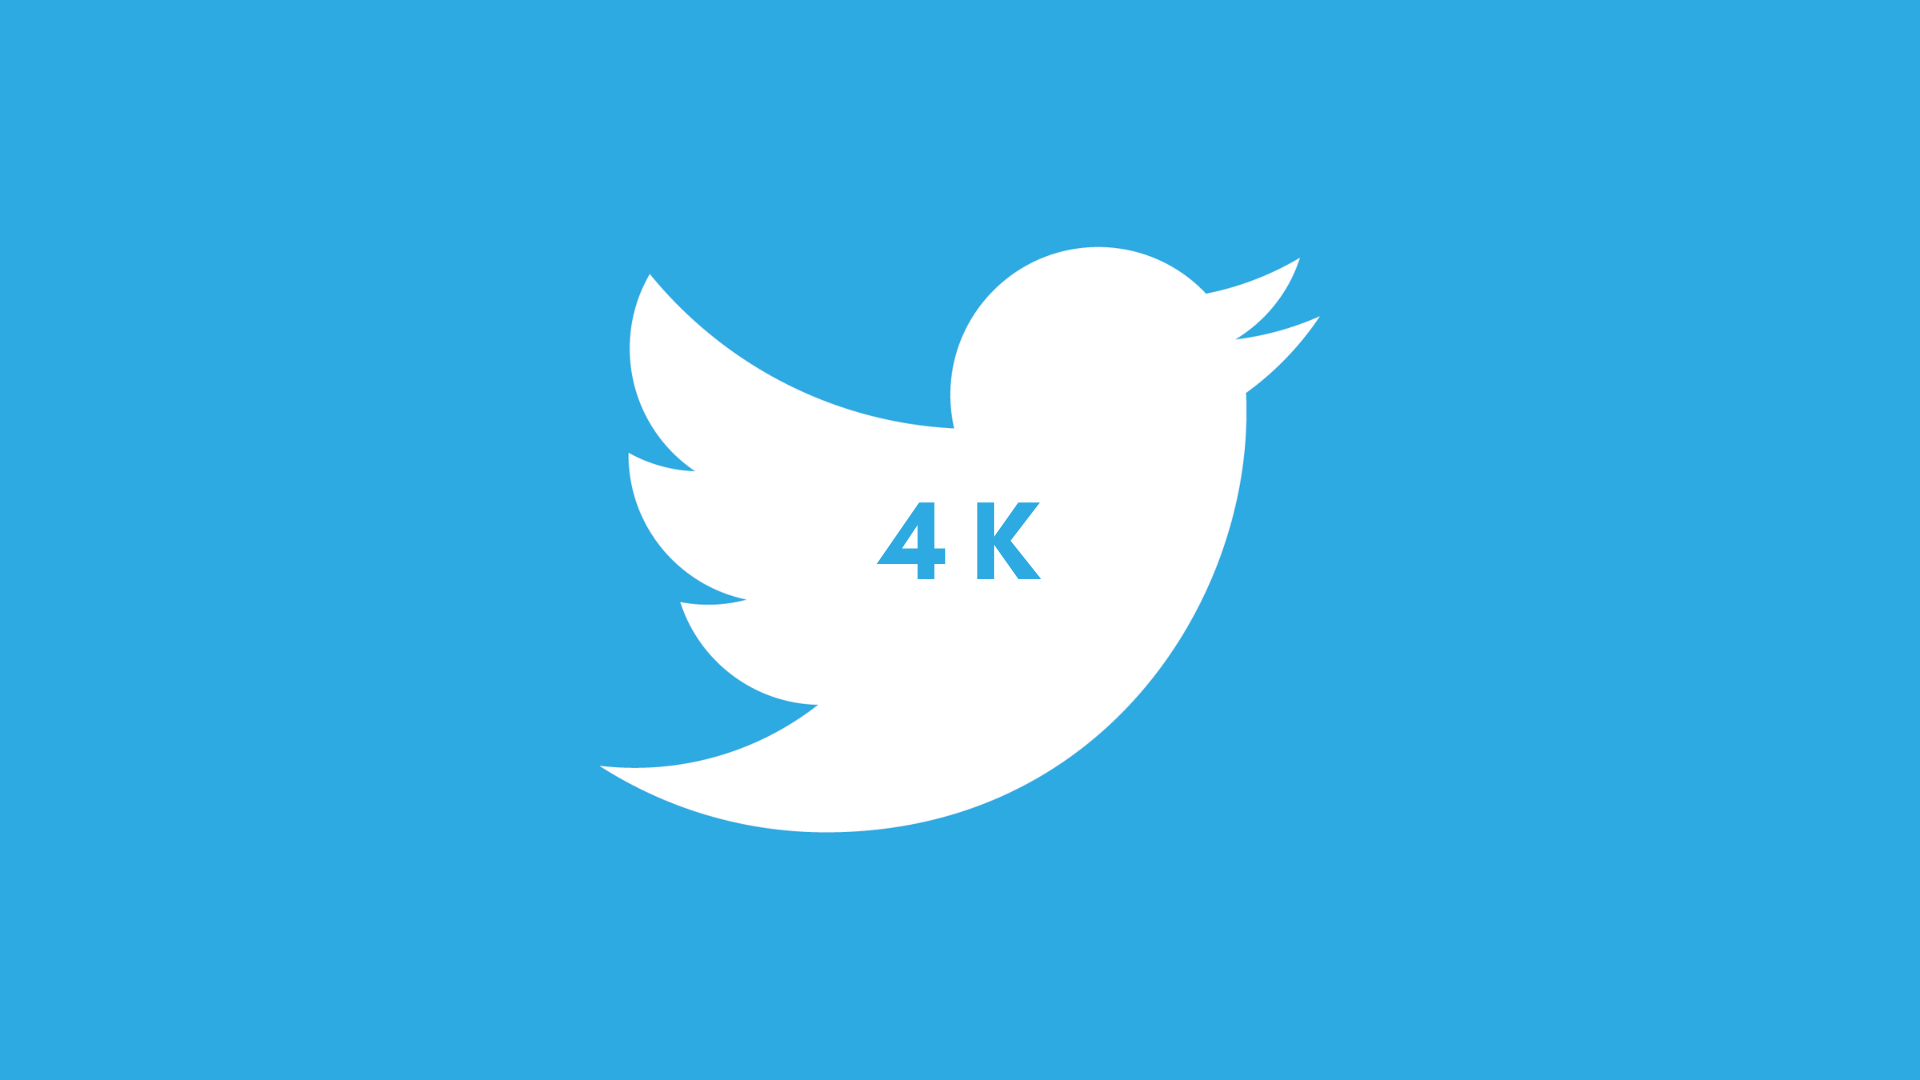 You can finally upload and view 4K images on Twitter for Android (APK  Download)